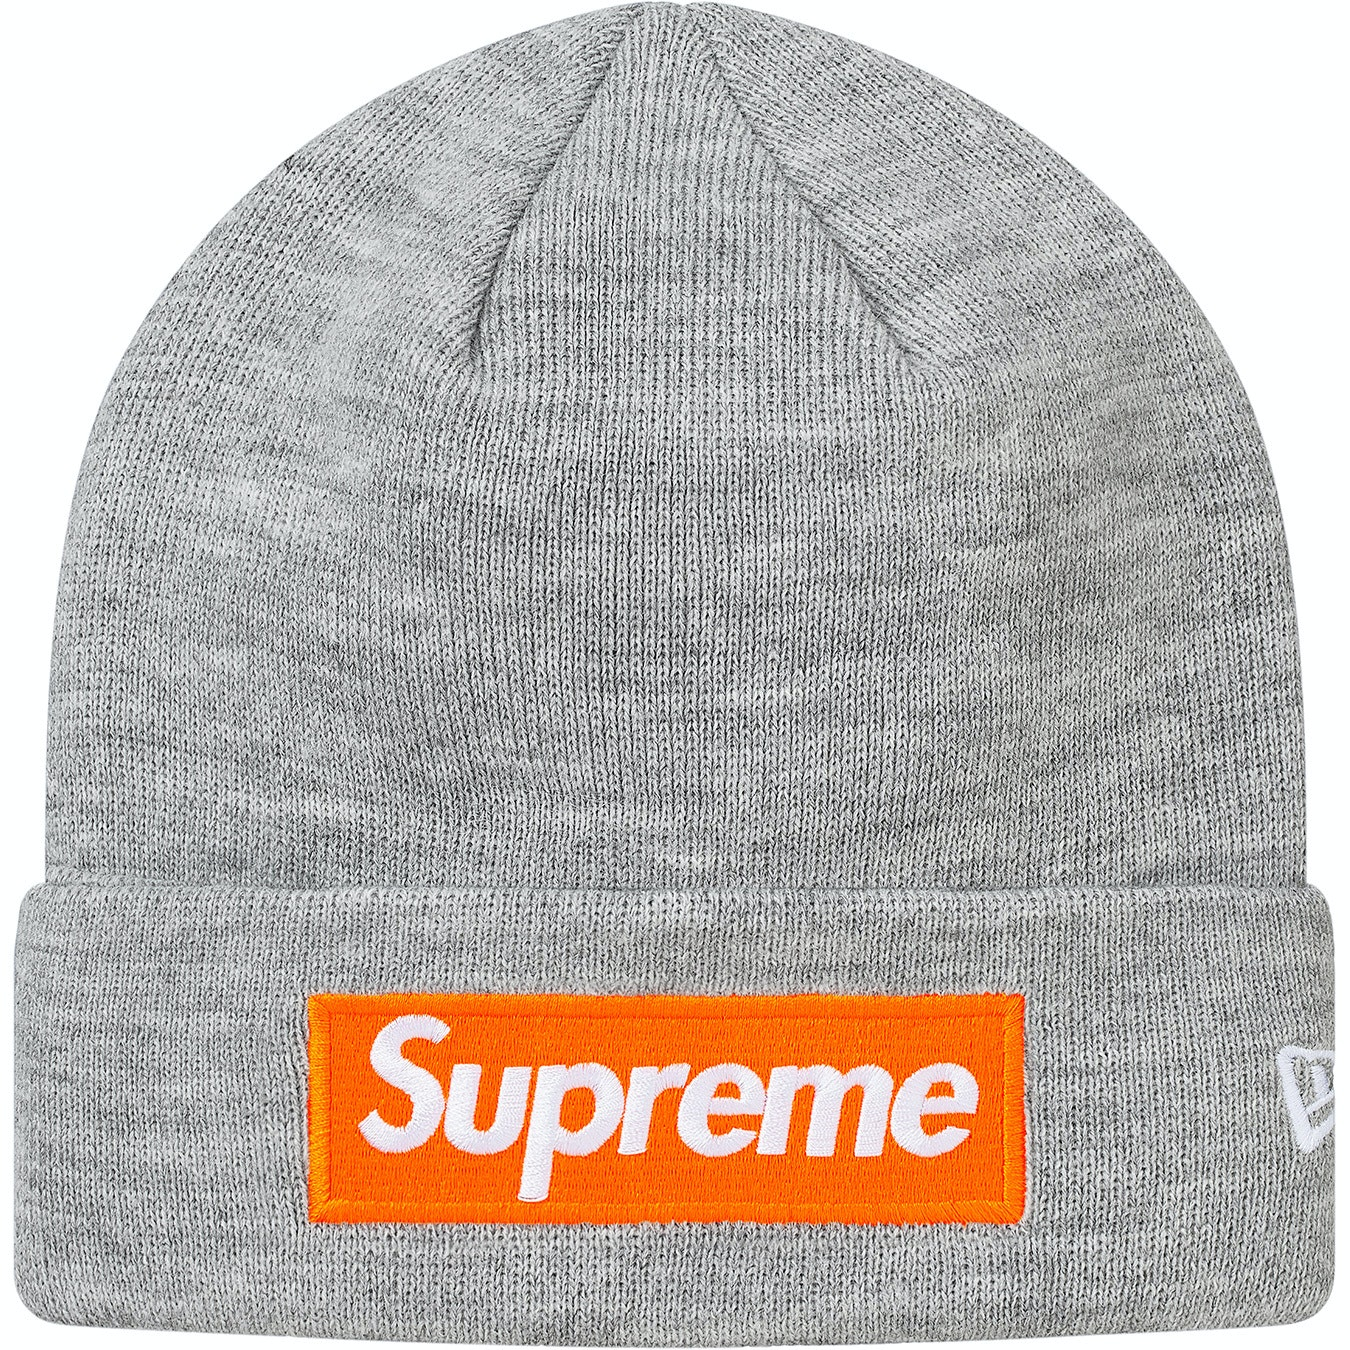 Supreme x New Era Black S Logo FW17 Beanie